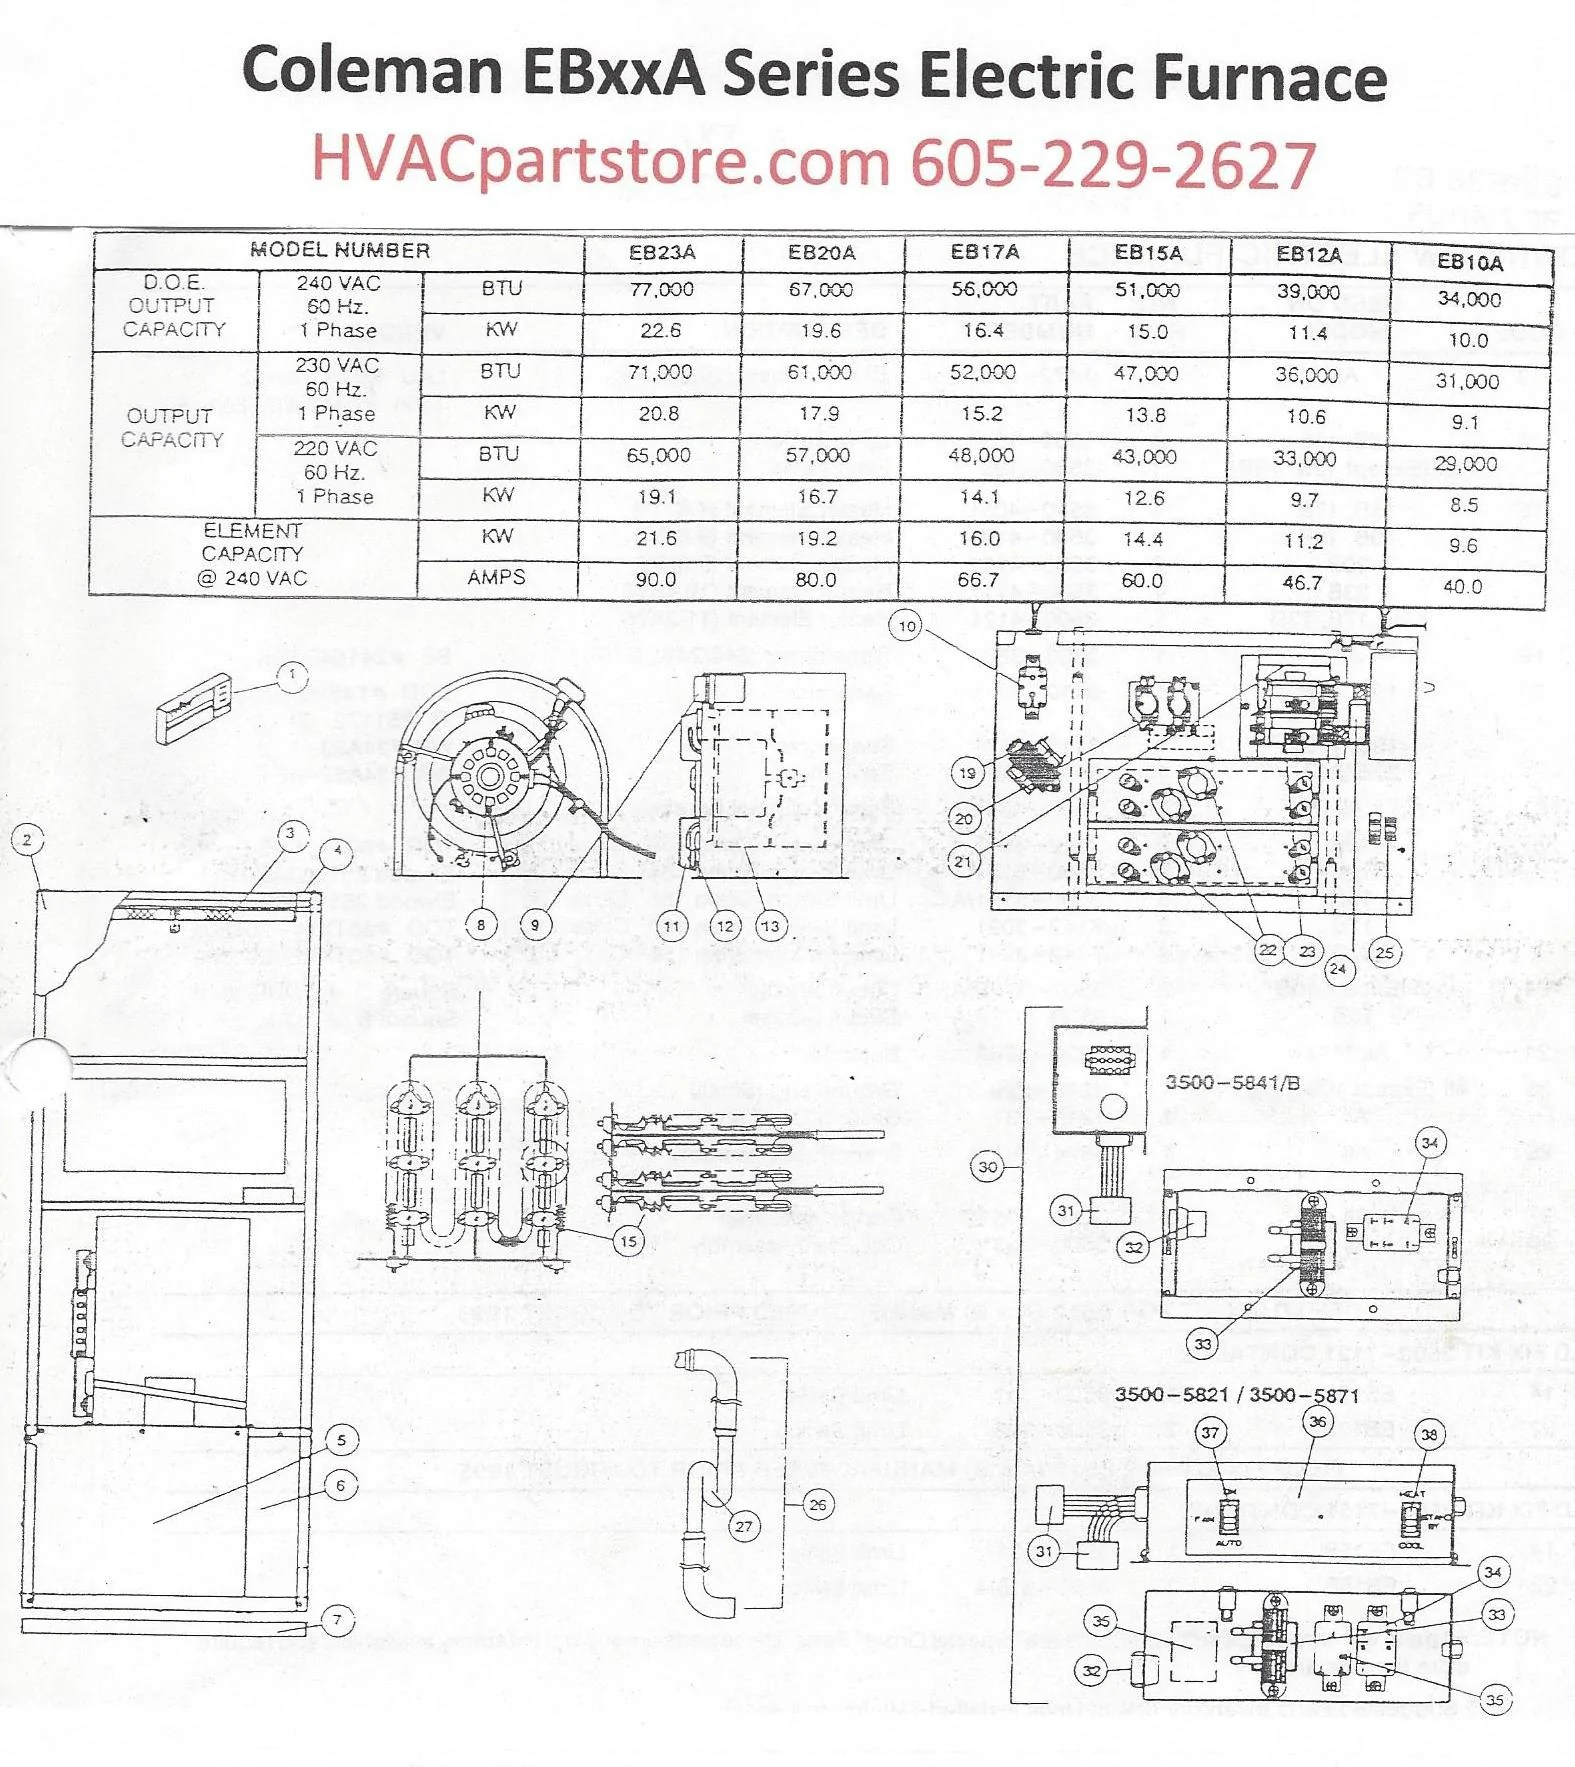 Rheem Wiring Diagram moreover 9rqhd For Furnace Transformer Wiring Diagram besides 518023 Need Protect New Ceiling Exhaust Fan Bathroom Gfci besides Mini Mgawiringdiagram Wire Diagrams Easy Simple Detail Ideas General Ex le Free Mobile Home Wiring Diagram furthermore Portable Generator Transfer Switch Wiring Diagram For Manual With Whole House. on mobile home fan wiring